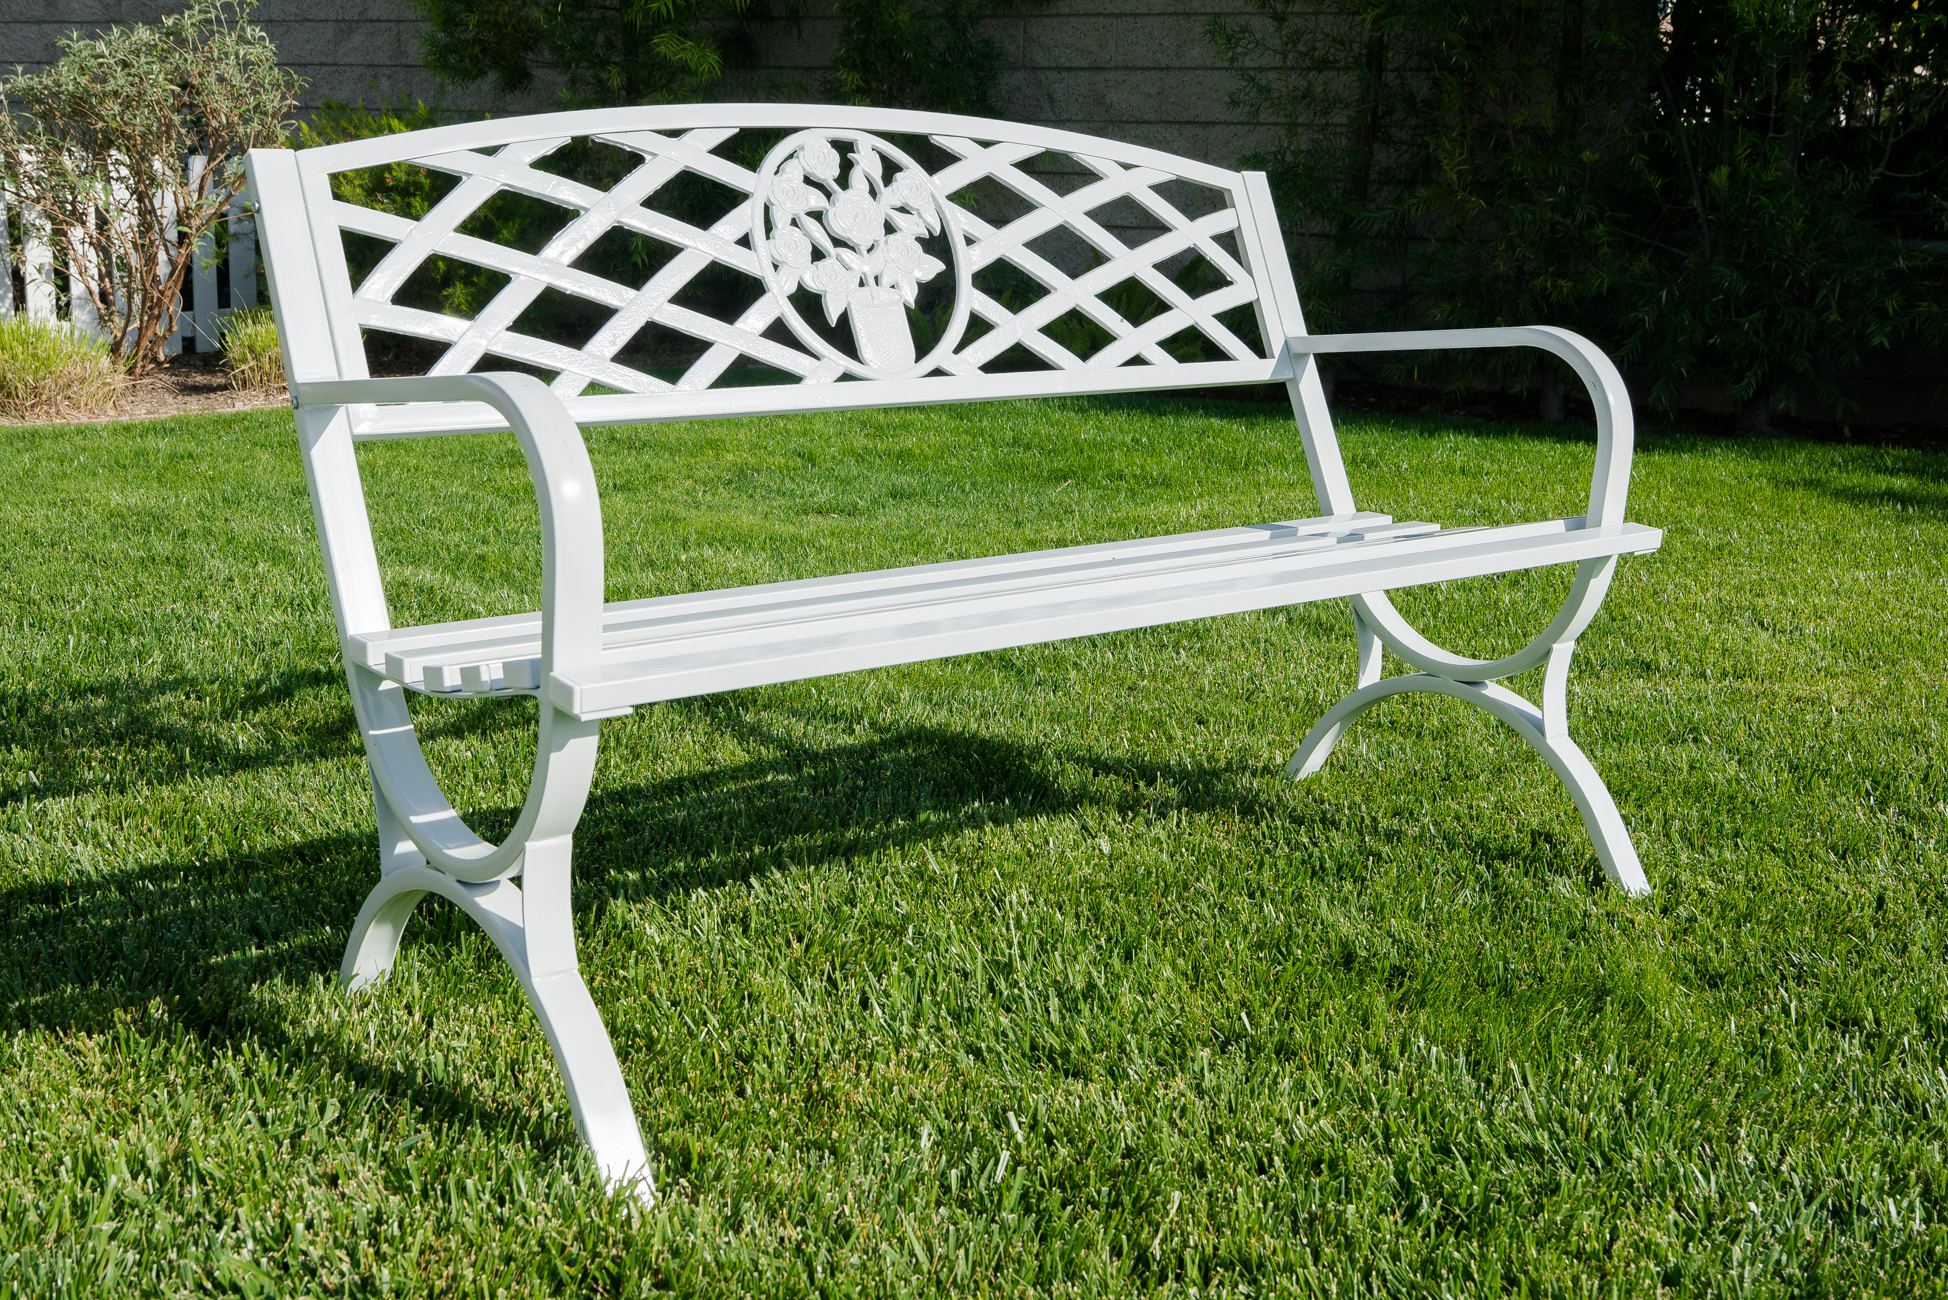 bench garden furniture outdoor seat steel co patio aosom lawn chair outsunny white uk god black park person